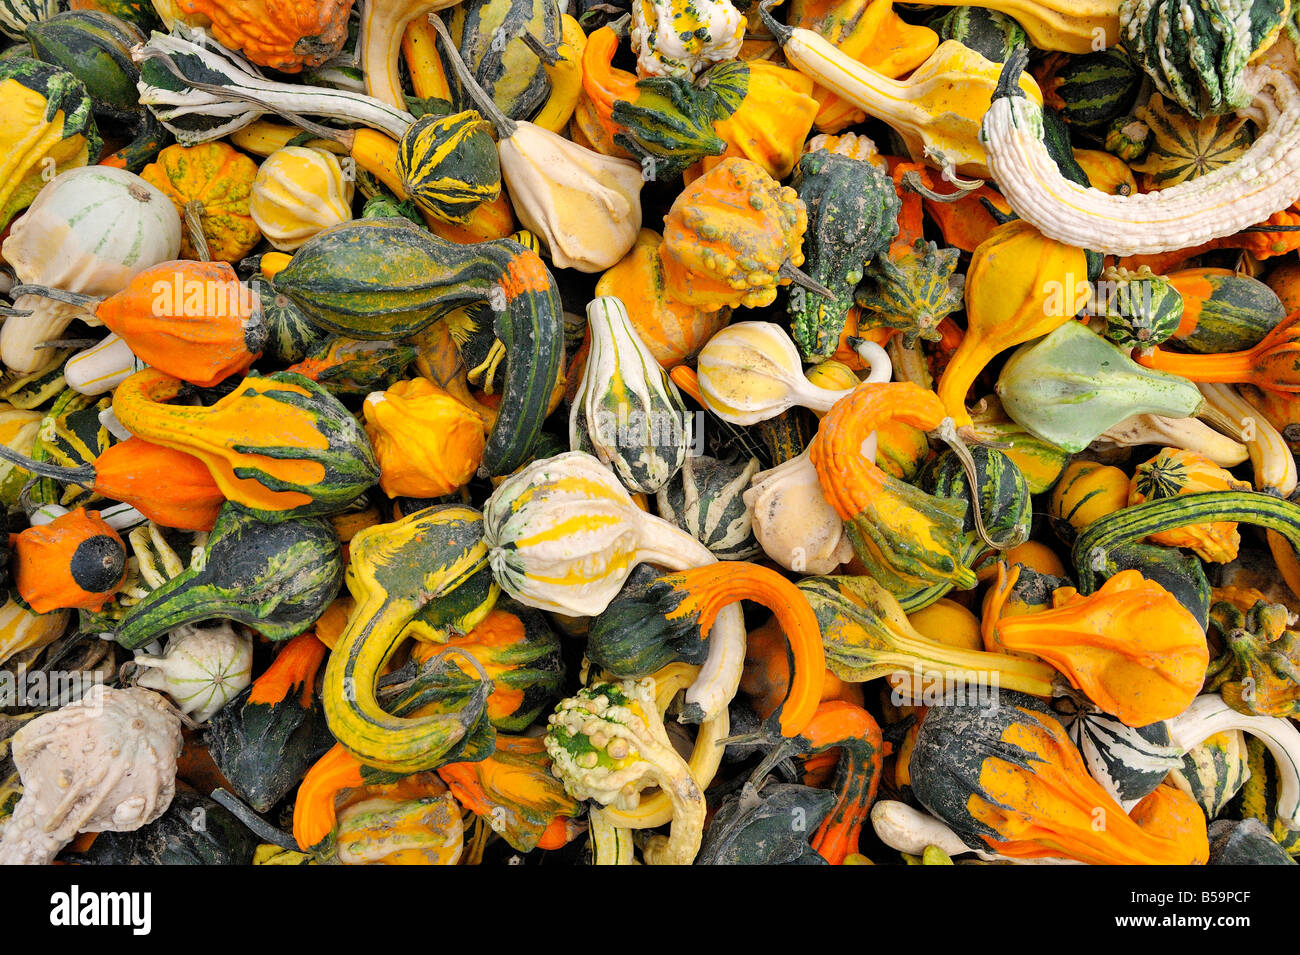 Decorative Gourds For Sale At A New York City Green Market Stock